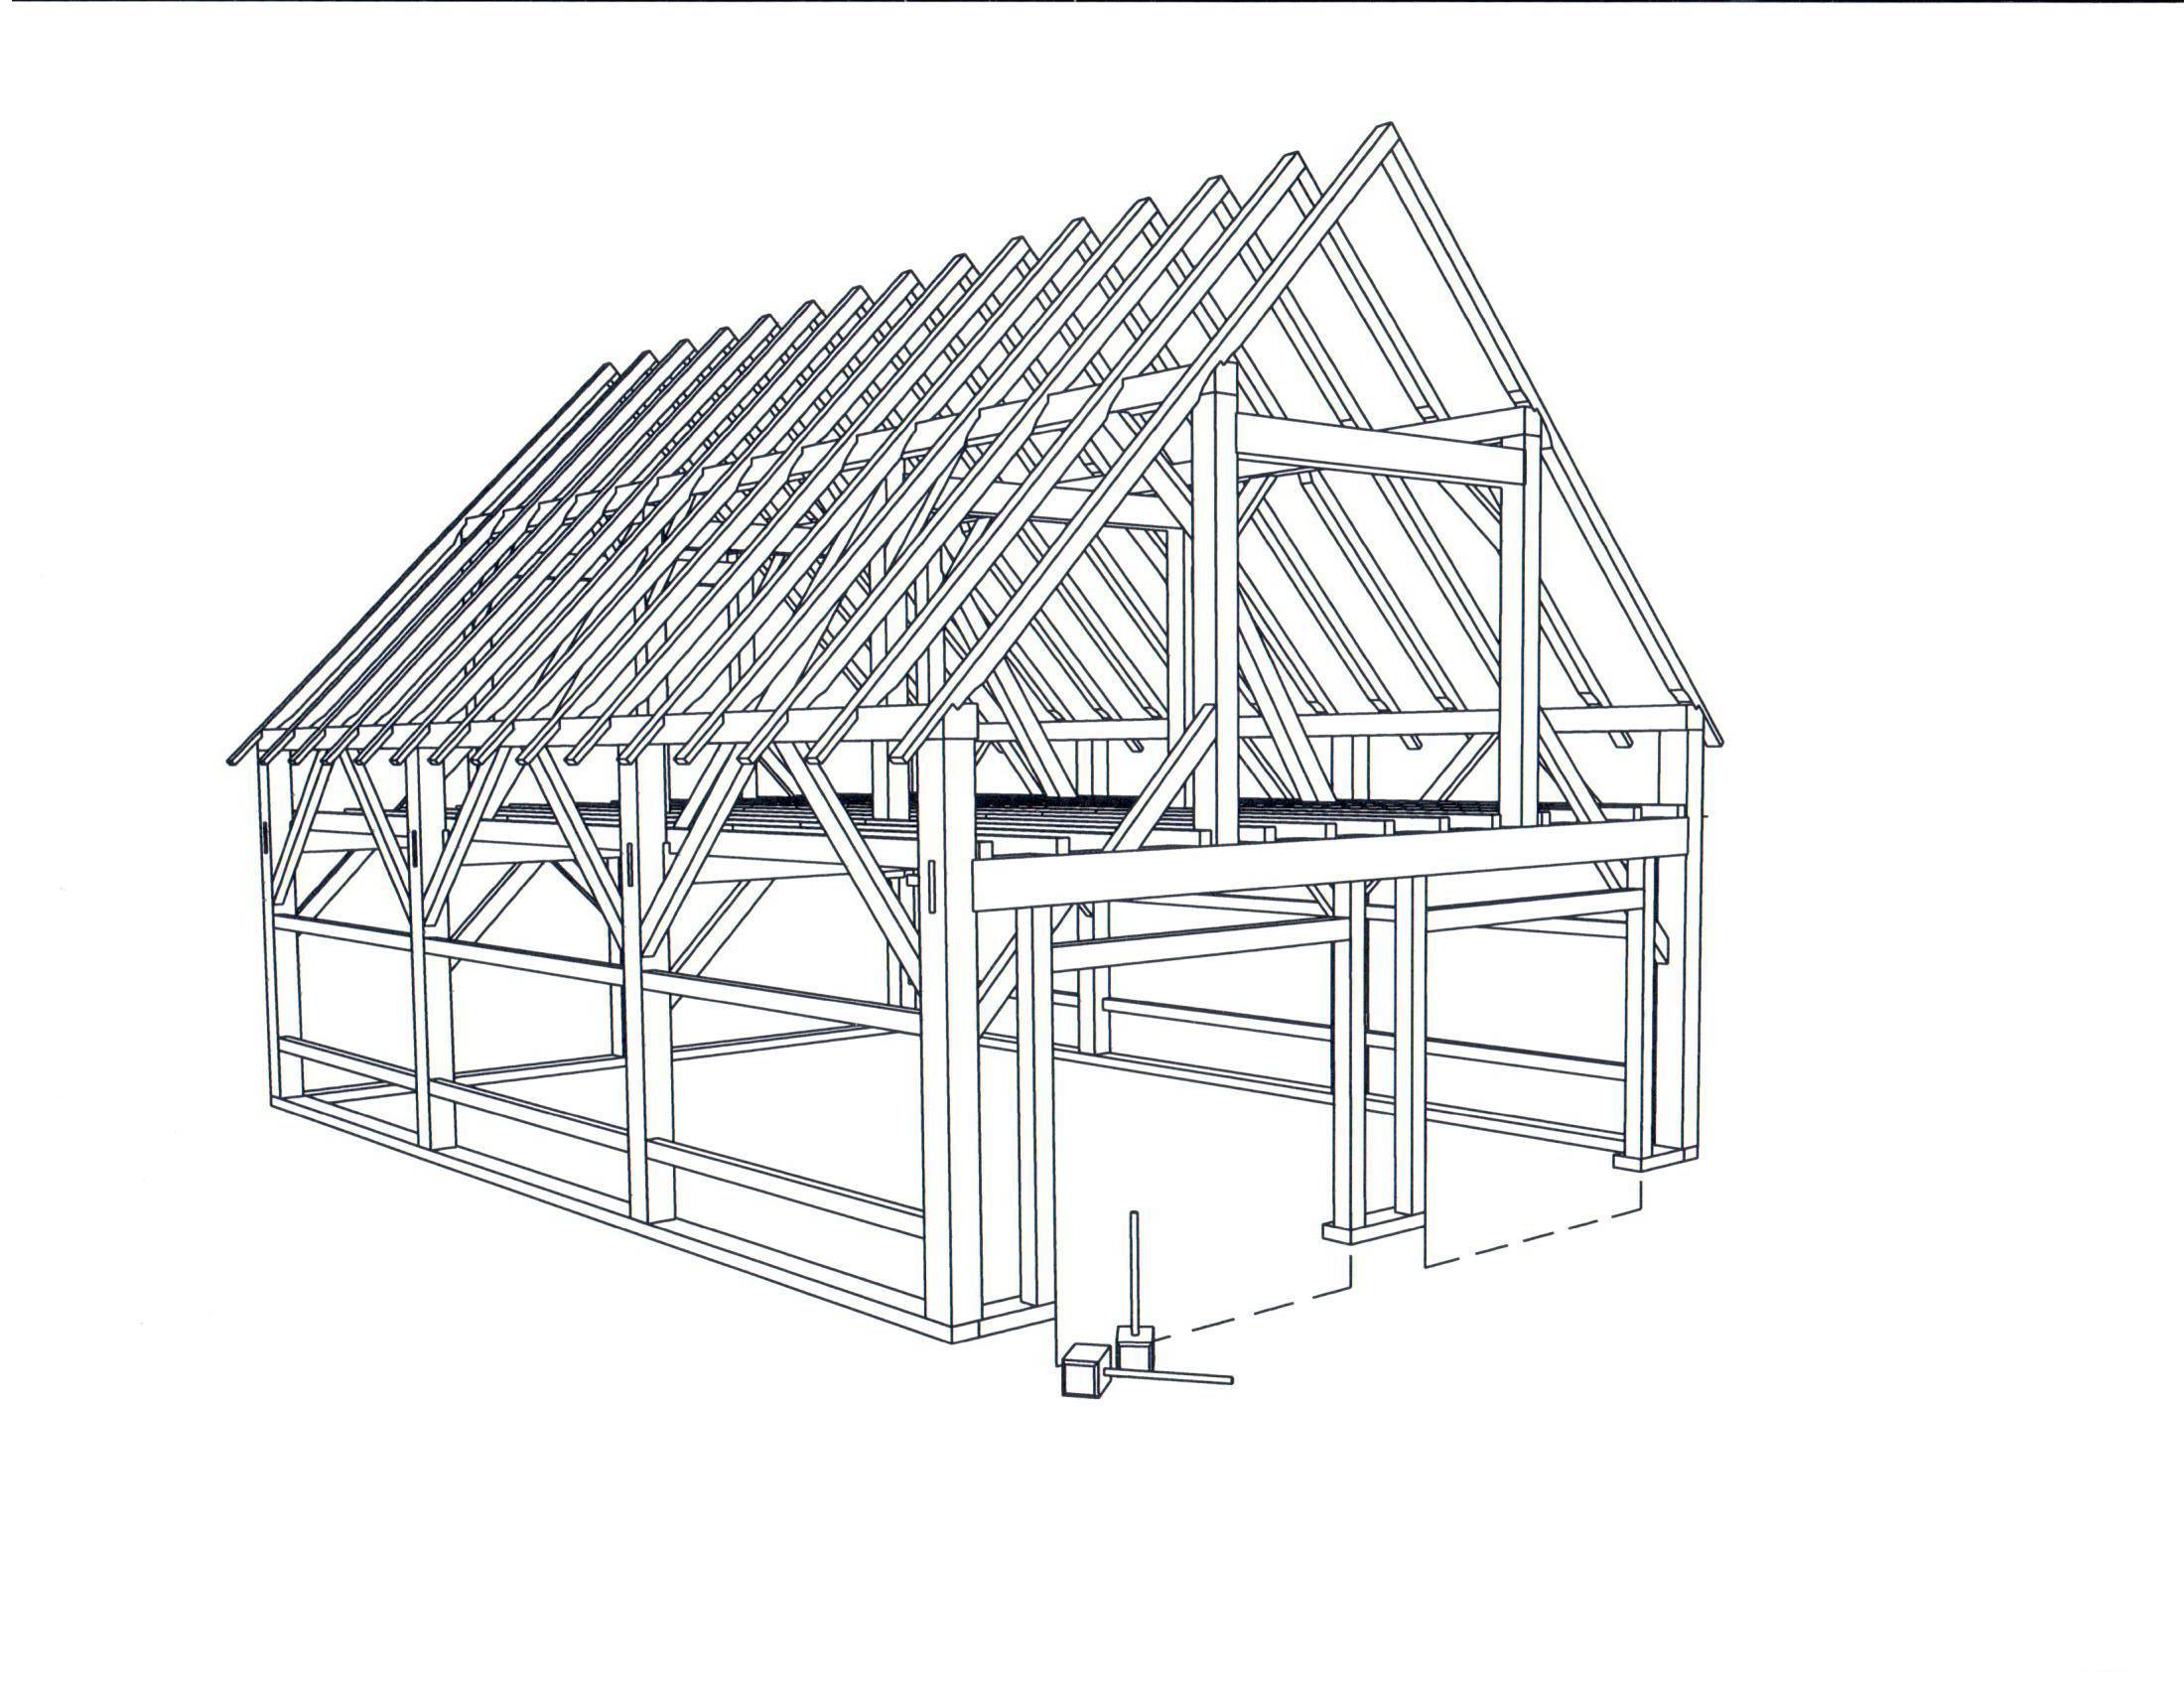 26 x 36 clear span garage frame brunswick timber frames for 26 x 36 garage